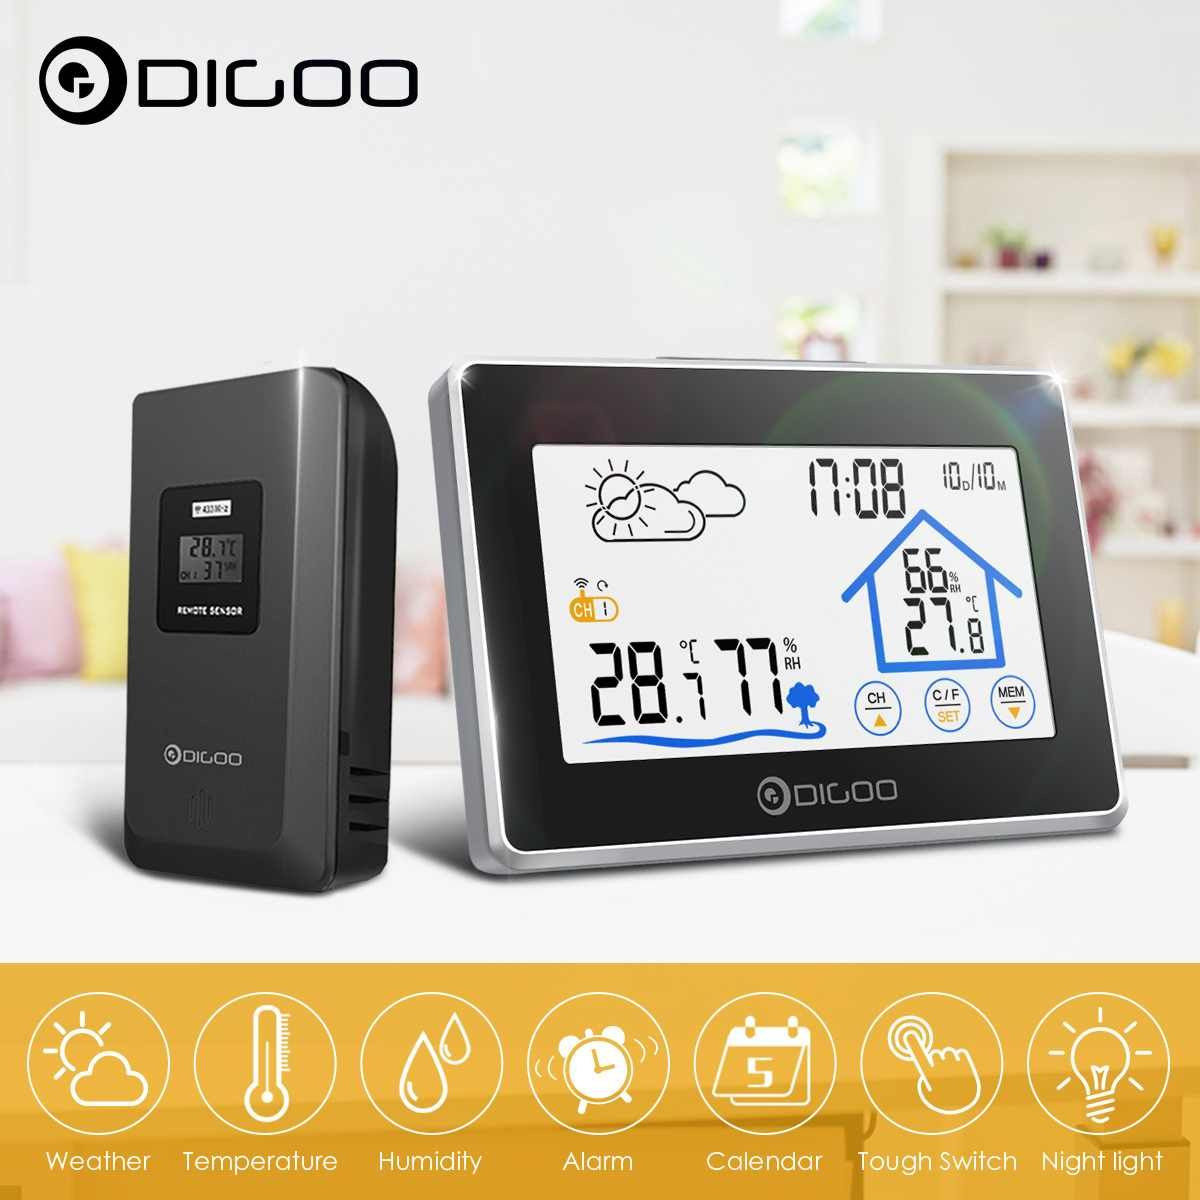 Digoo DG-TH8380 Color Screen Weather Station Sensor Thermometer Hygrometer Meter Digital Forecast Sensor Indoor Outdoor Home